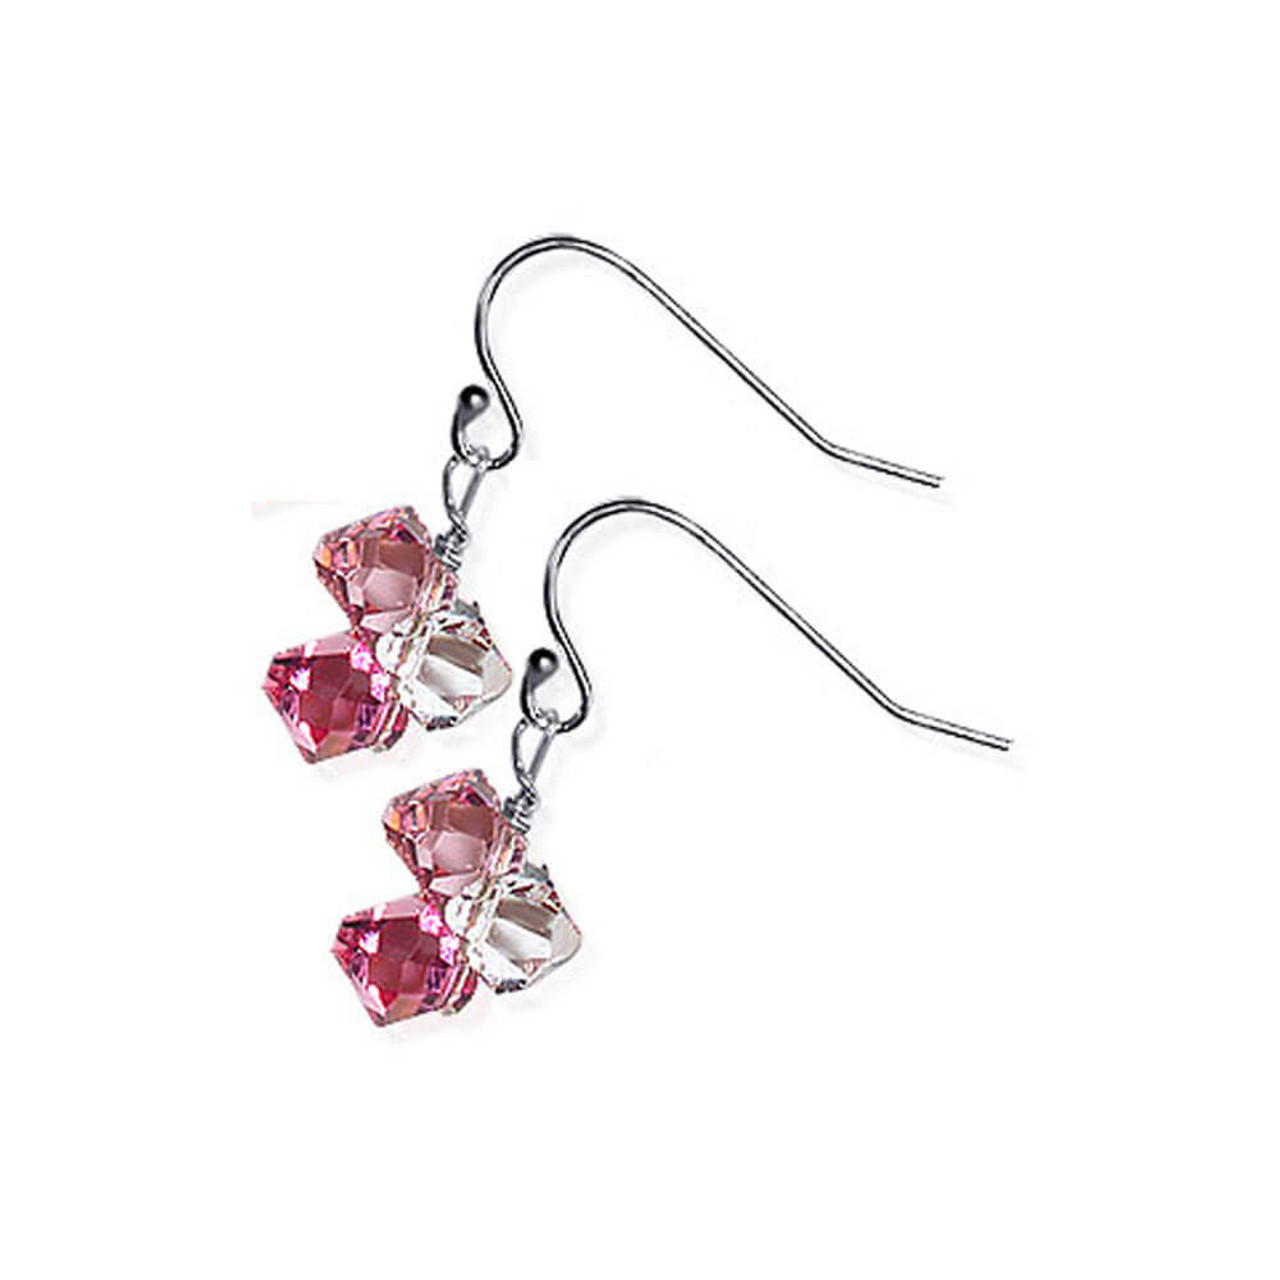 Sterling Silver Swarovski Elements Pink and Clear Crystal Handmade Drop Earrings